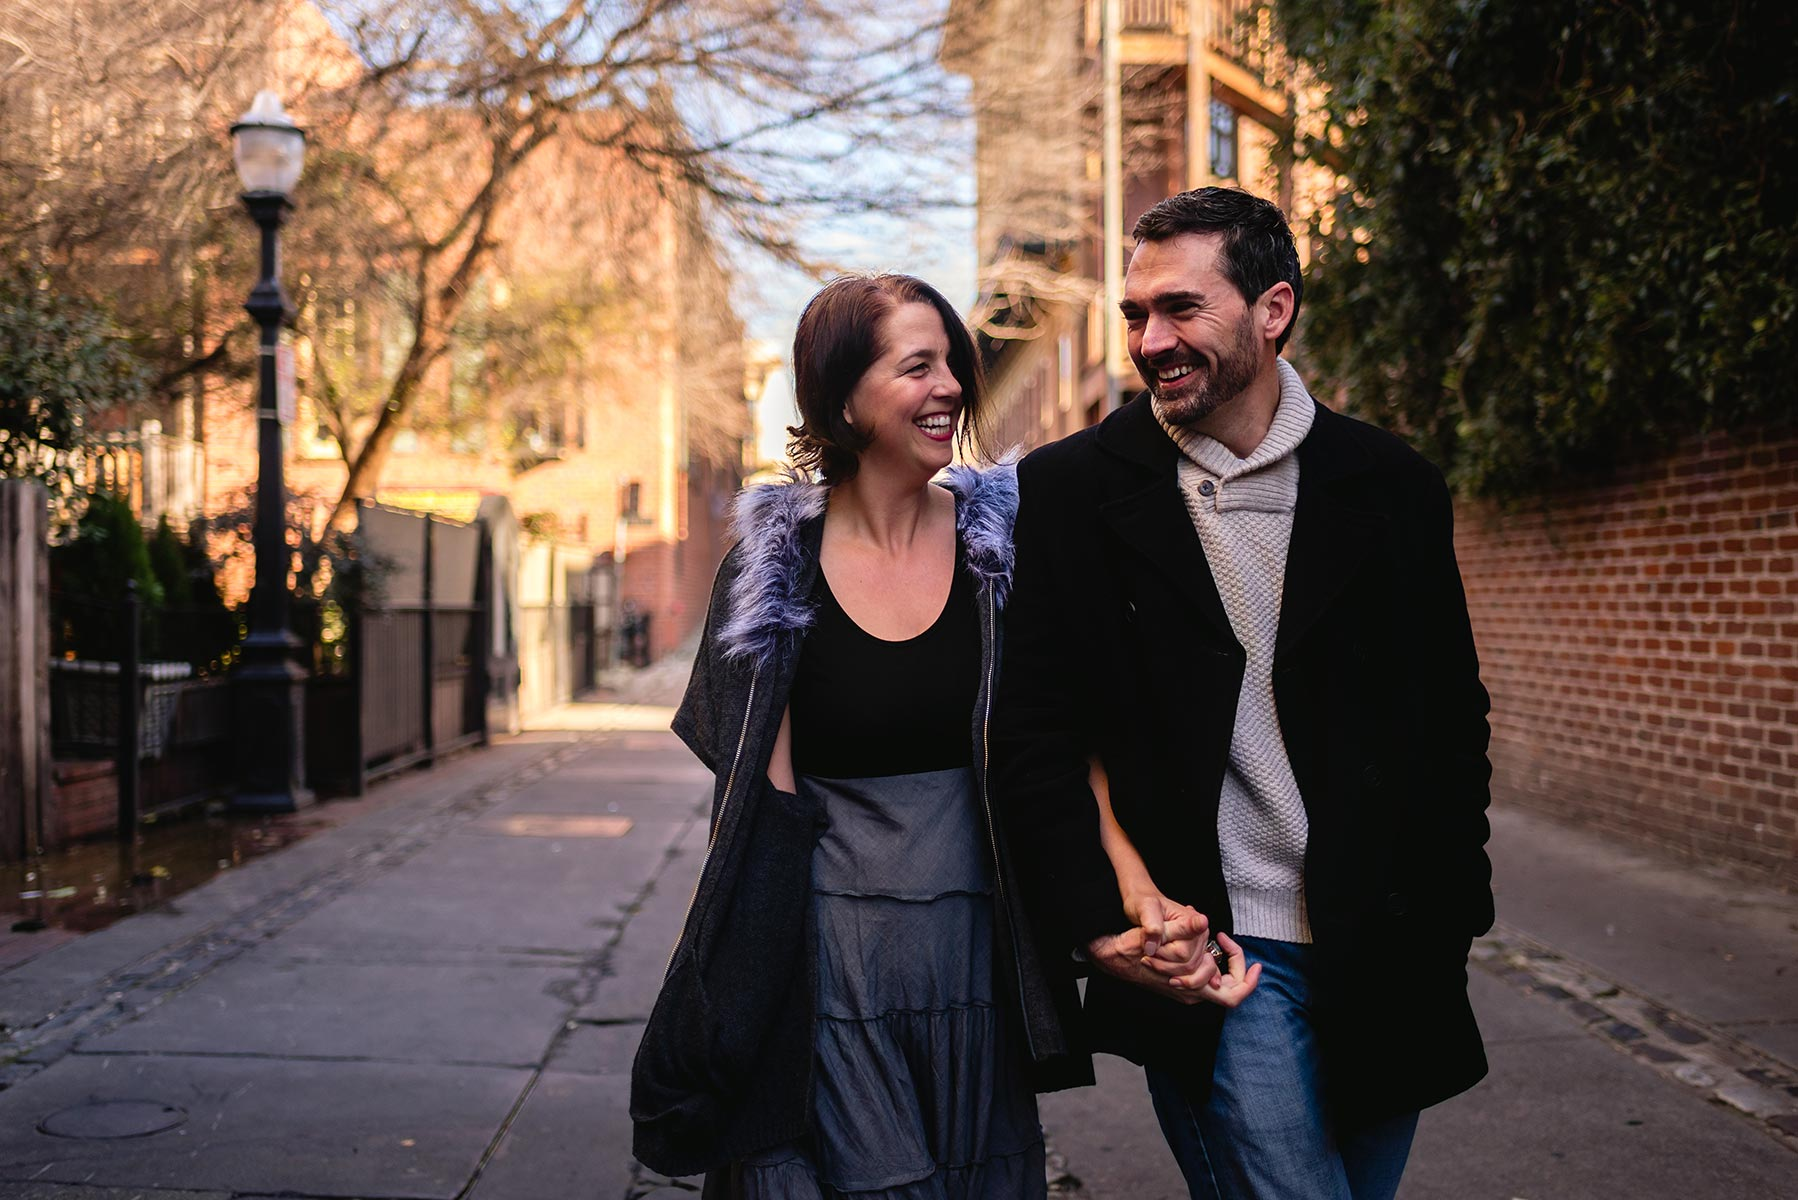 Two people in love holding hands and laughing in an Old Sacramento alley way